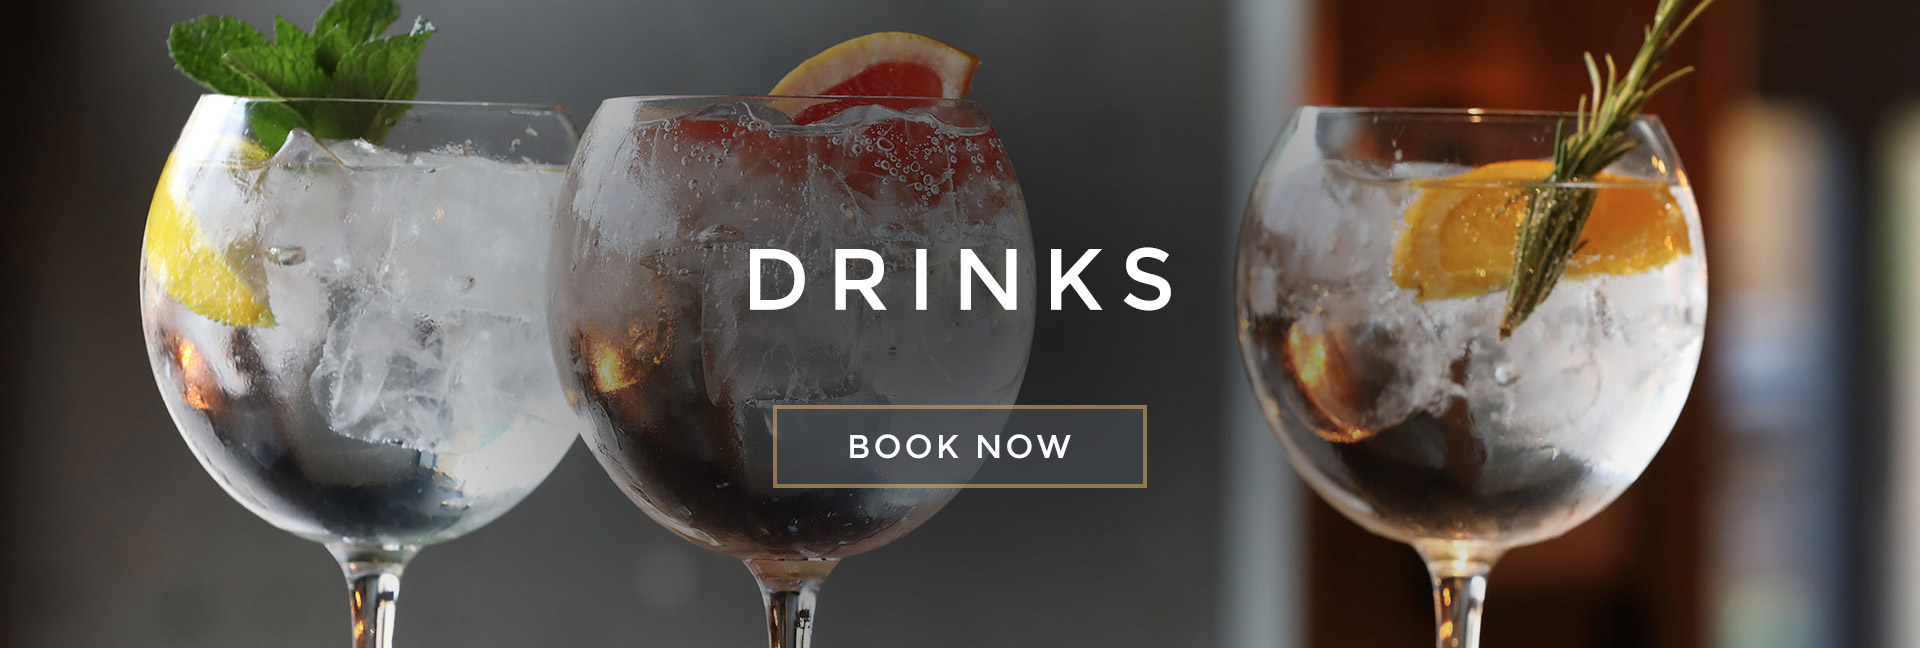 Drinks at All Bar One Manchester - Book your table